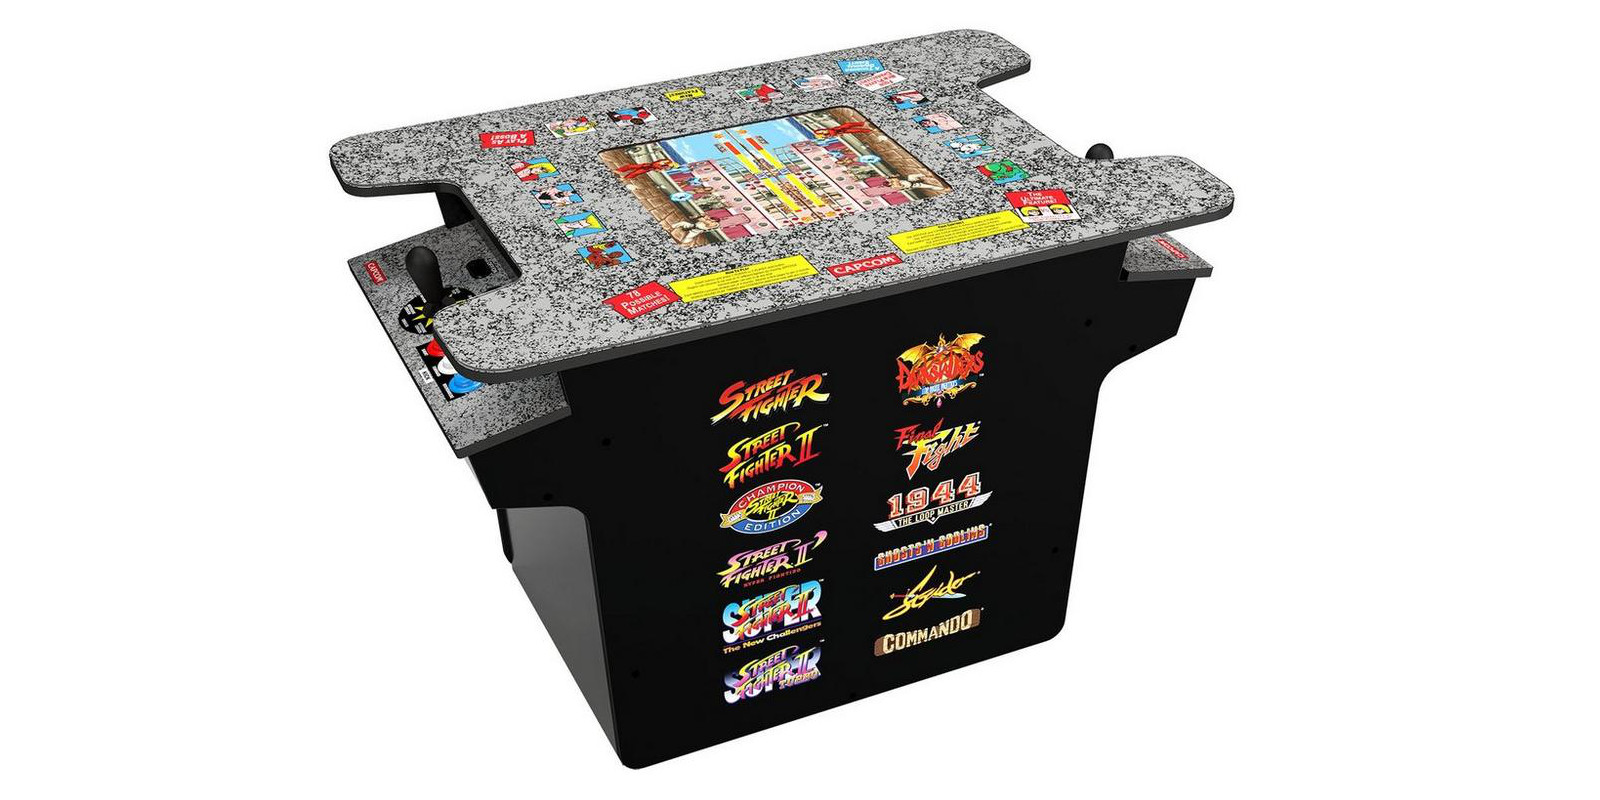 New Street Fighter cocktail cabinet now up for pre-order